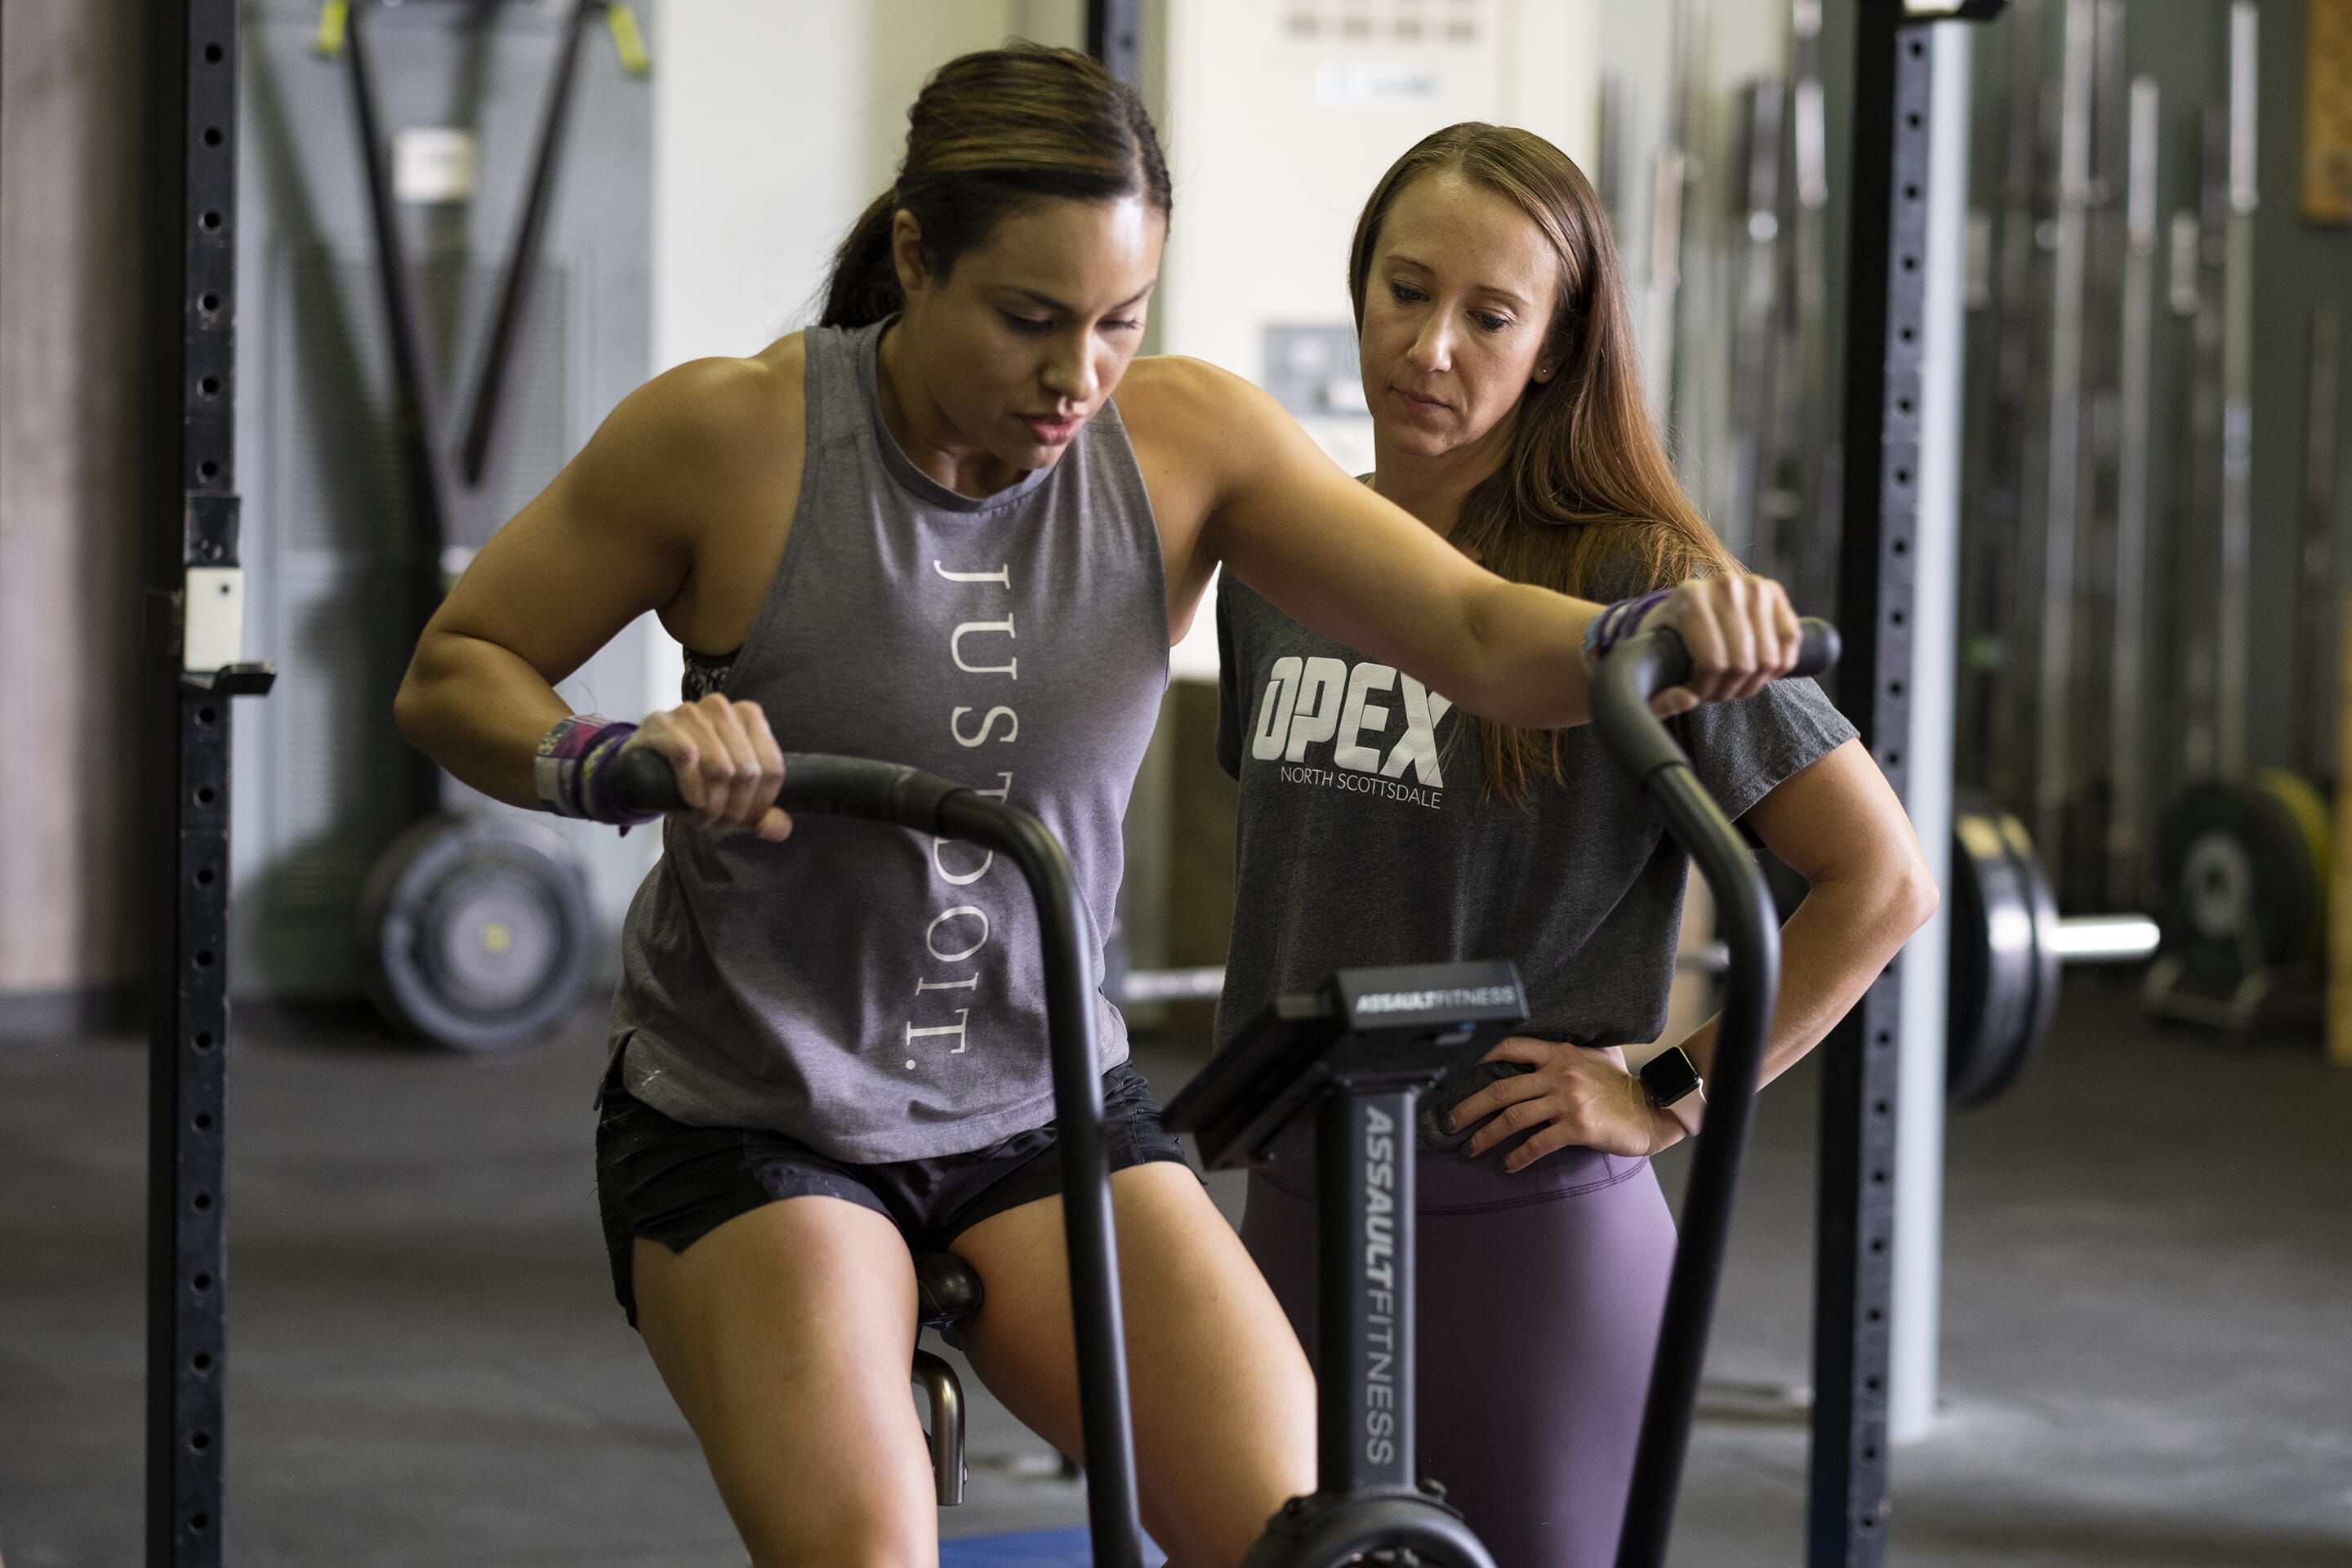 OPEX vs. Personal Training